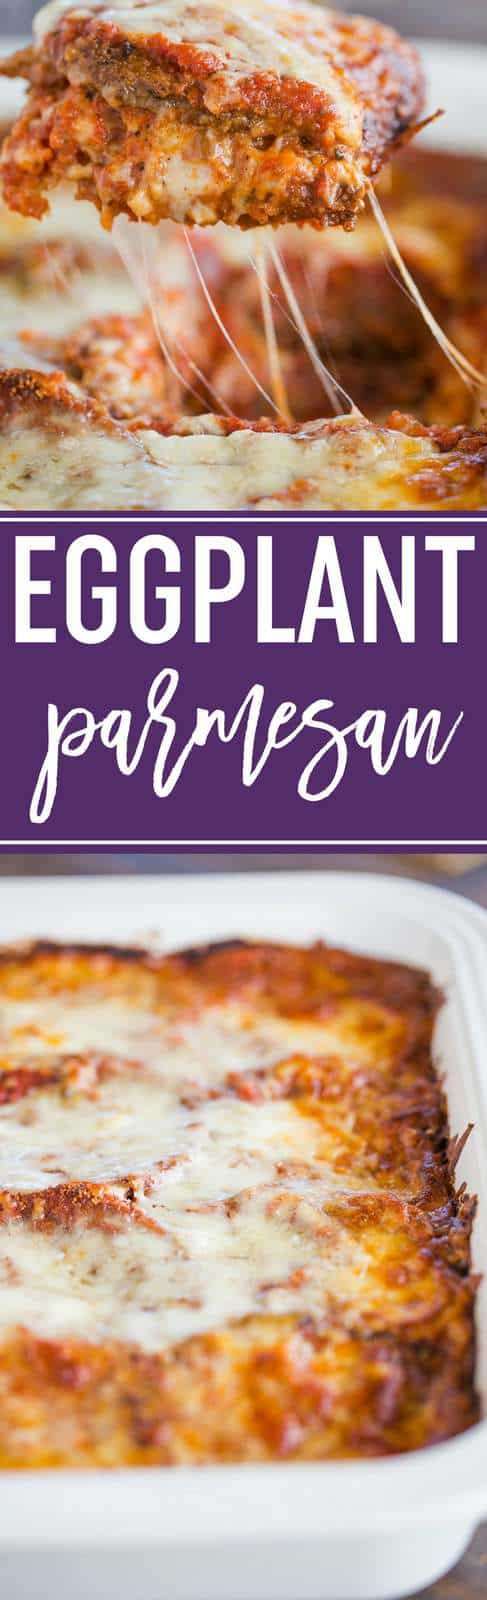 This is the BEST Eggplant Parmesan recipe! With layers of fried eggplant, spaghetti sauce, and loads of cheese, it is always a winner. #dinner #vegetarian #eggplant #italian #casserole